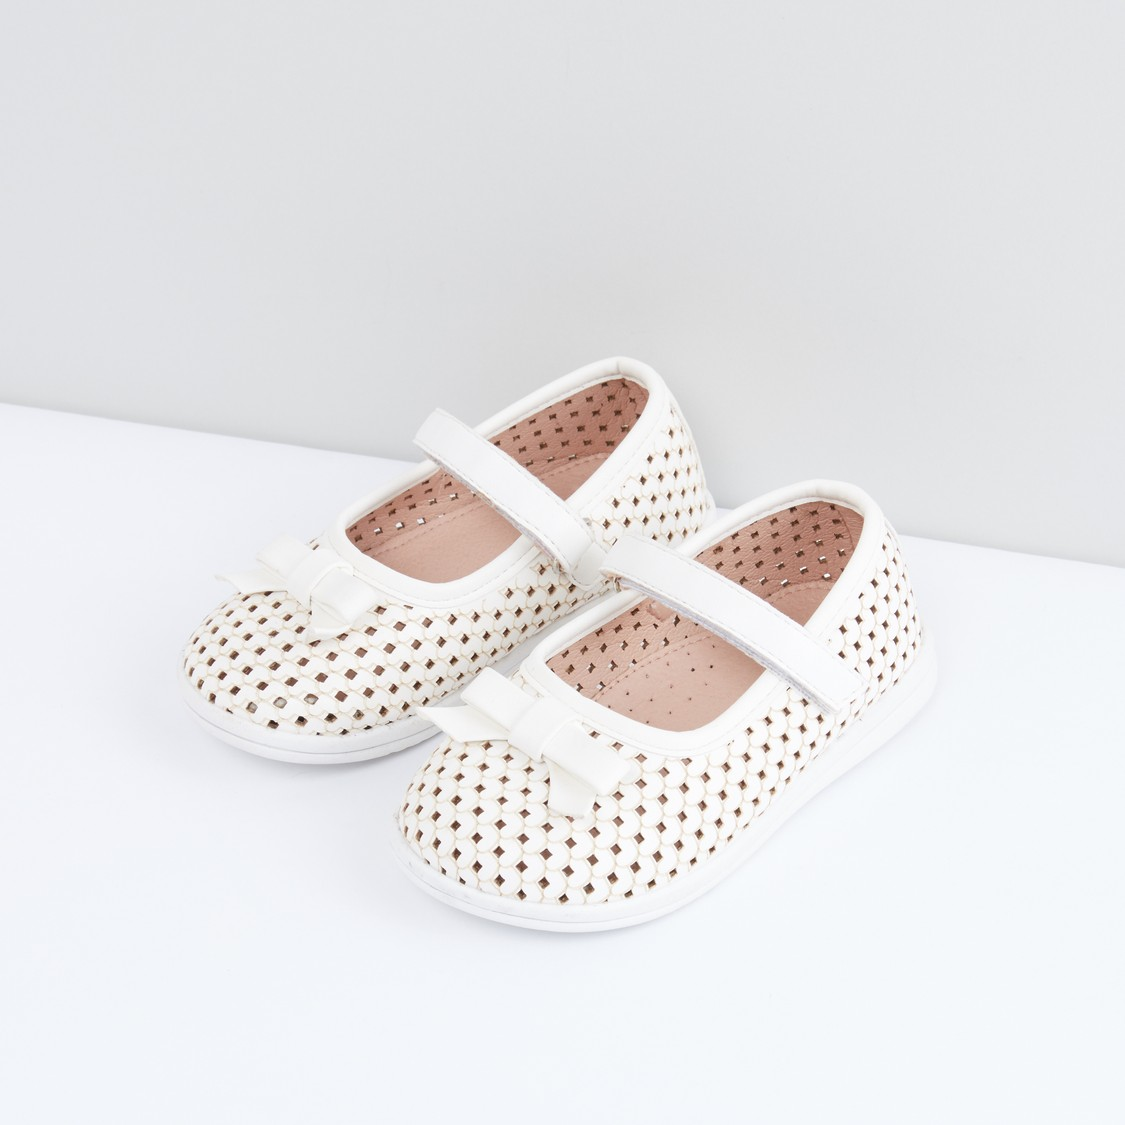 Laser Cut Shoes with Bow Detail and Hook and Loop Closure